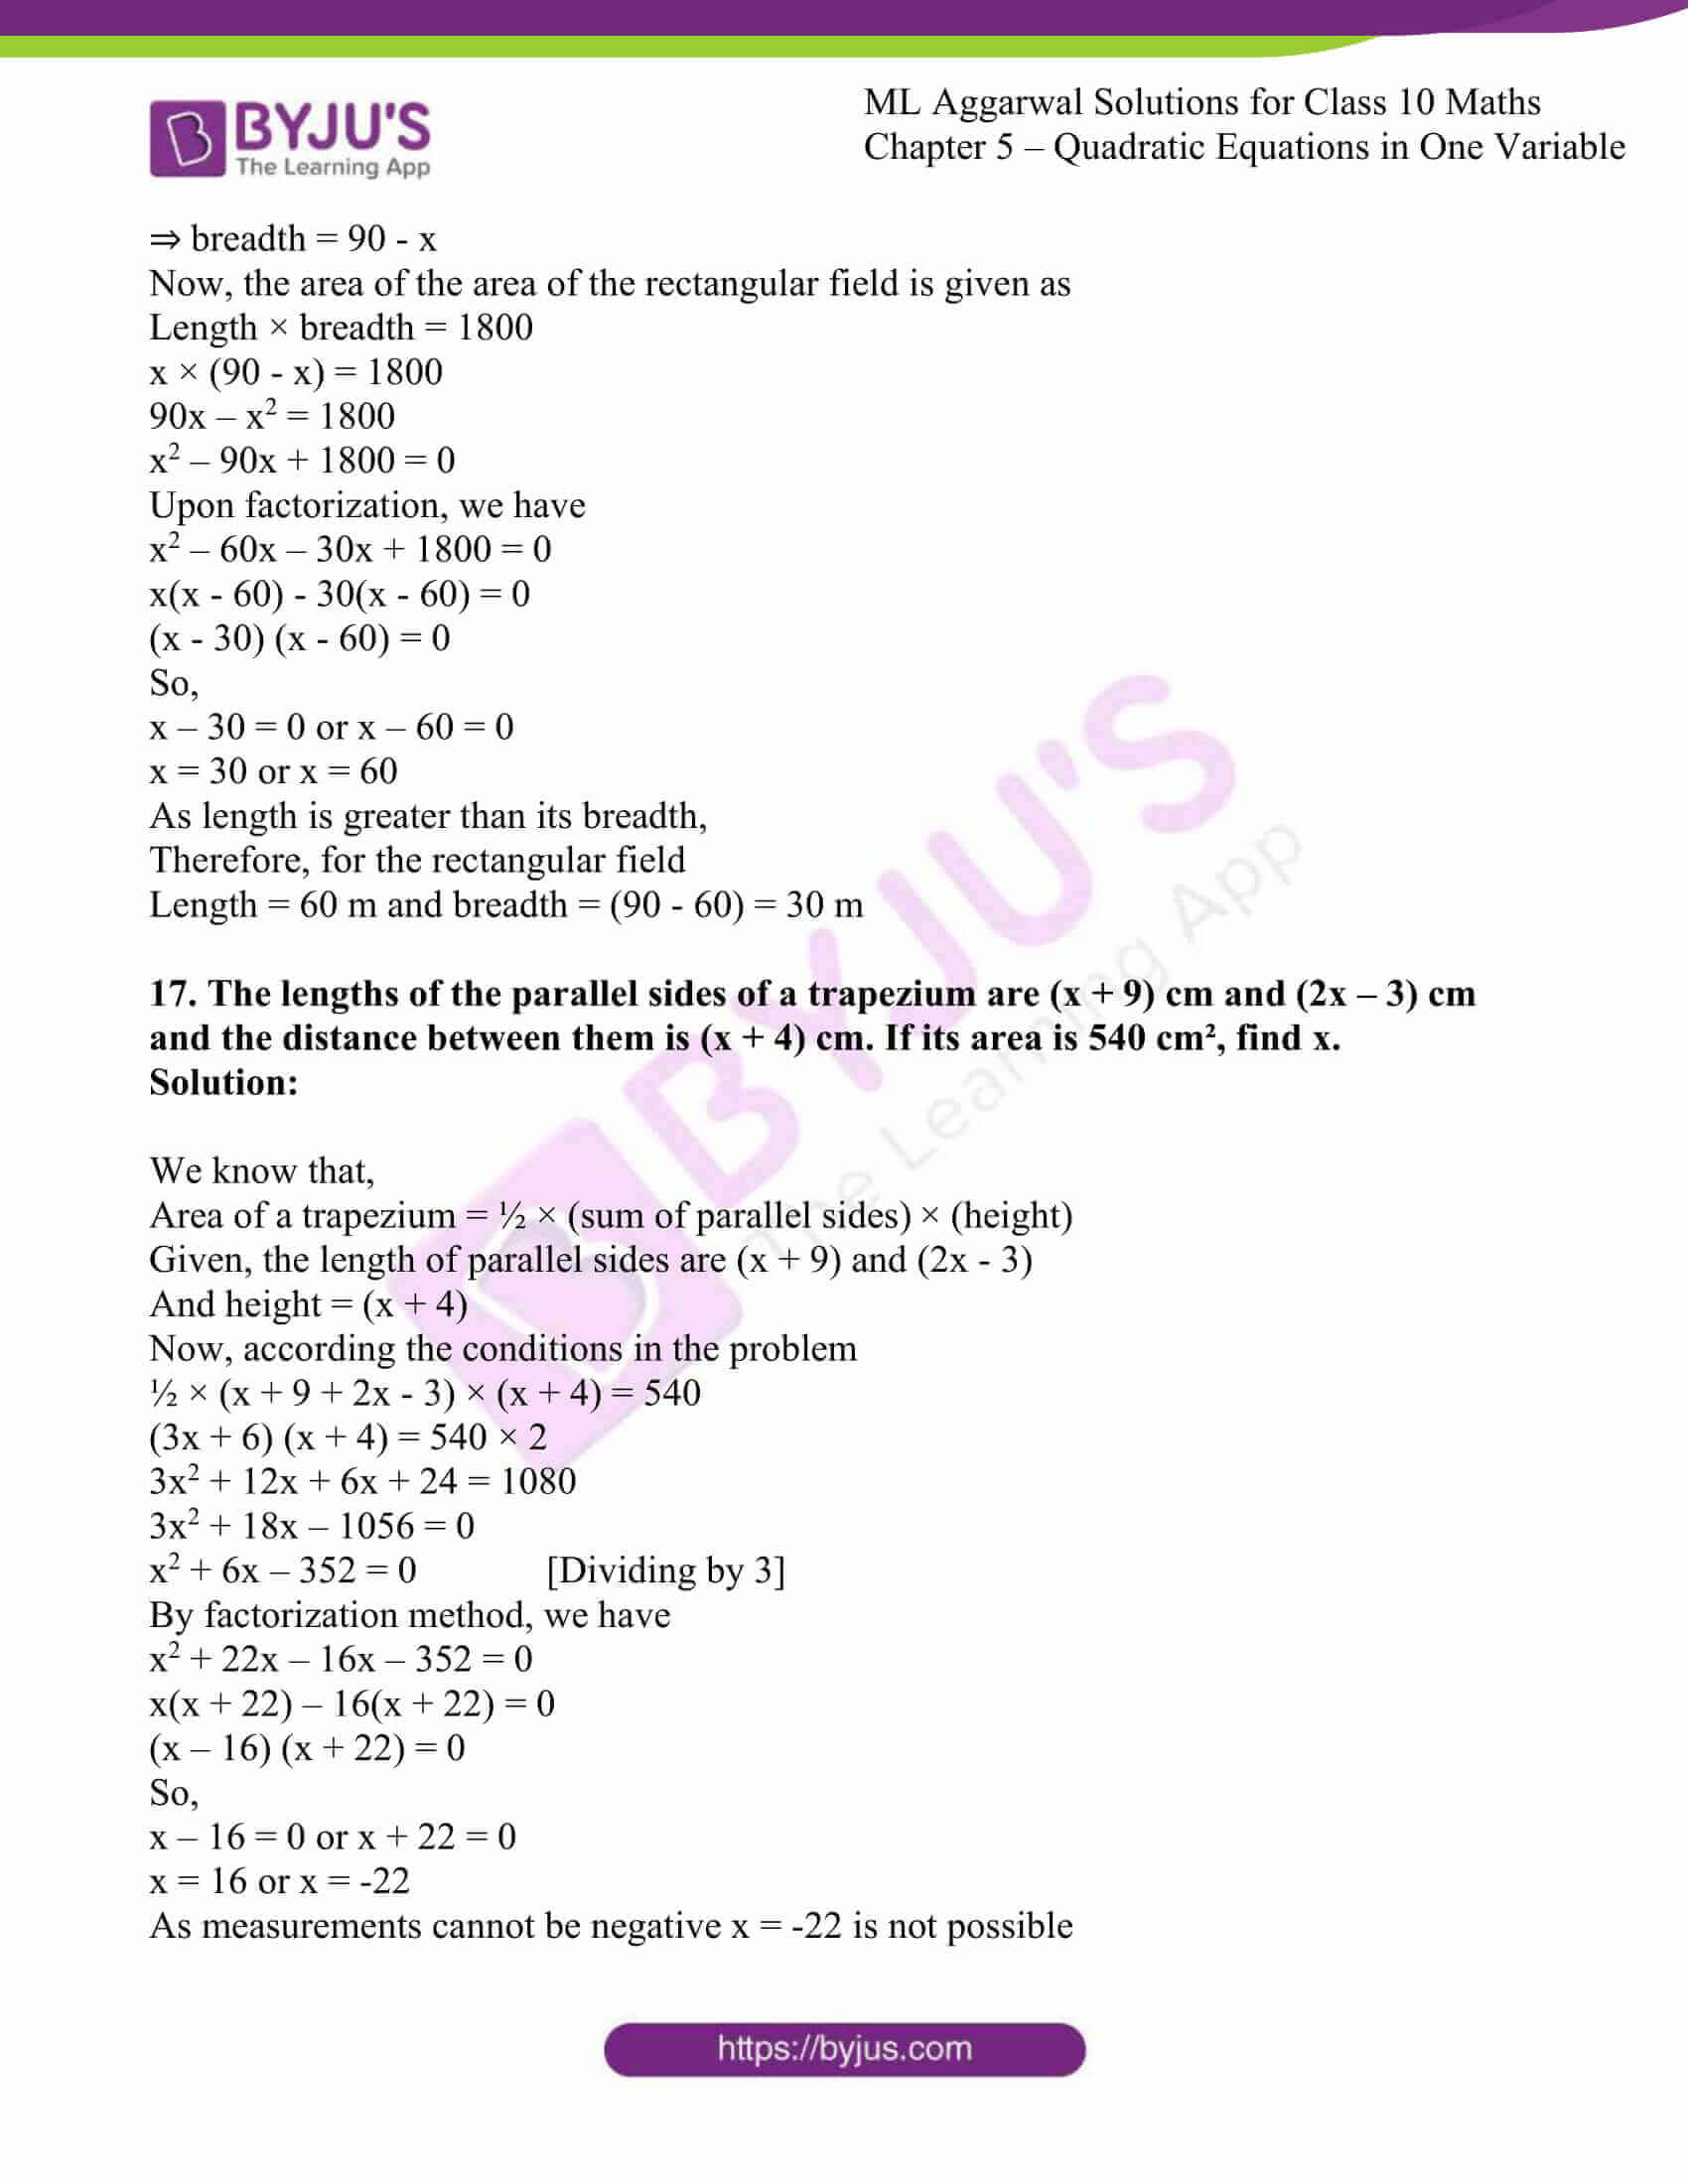 ml aggarwal solutions class 10 maths chapter 5 64